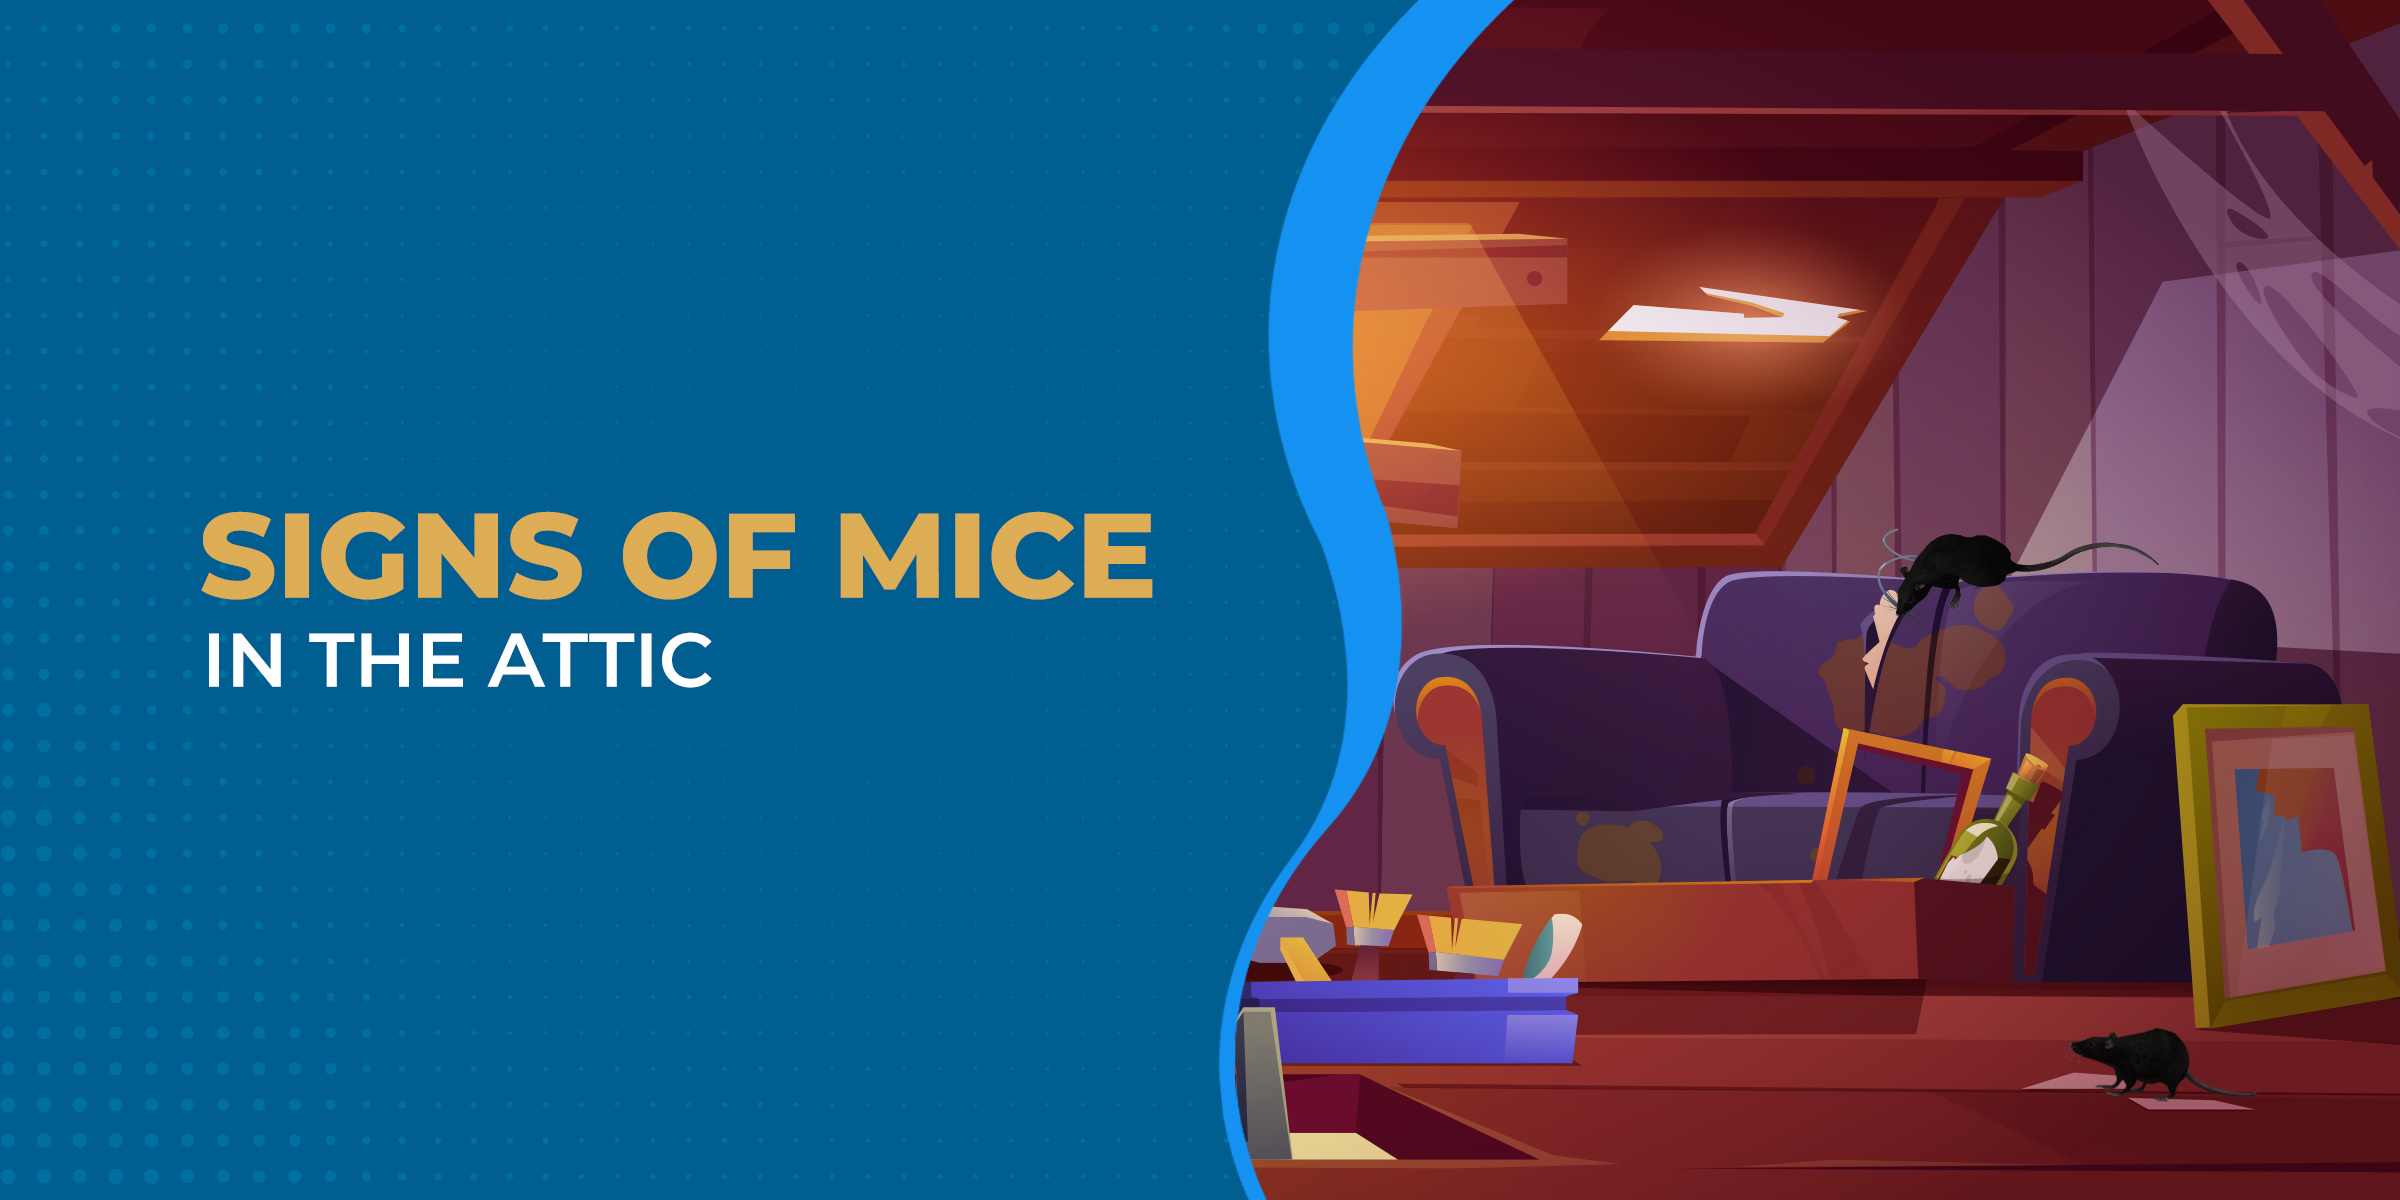 Signs of Mice in the Attic